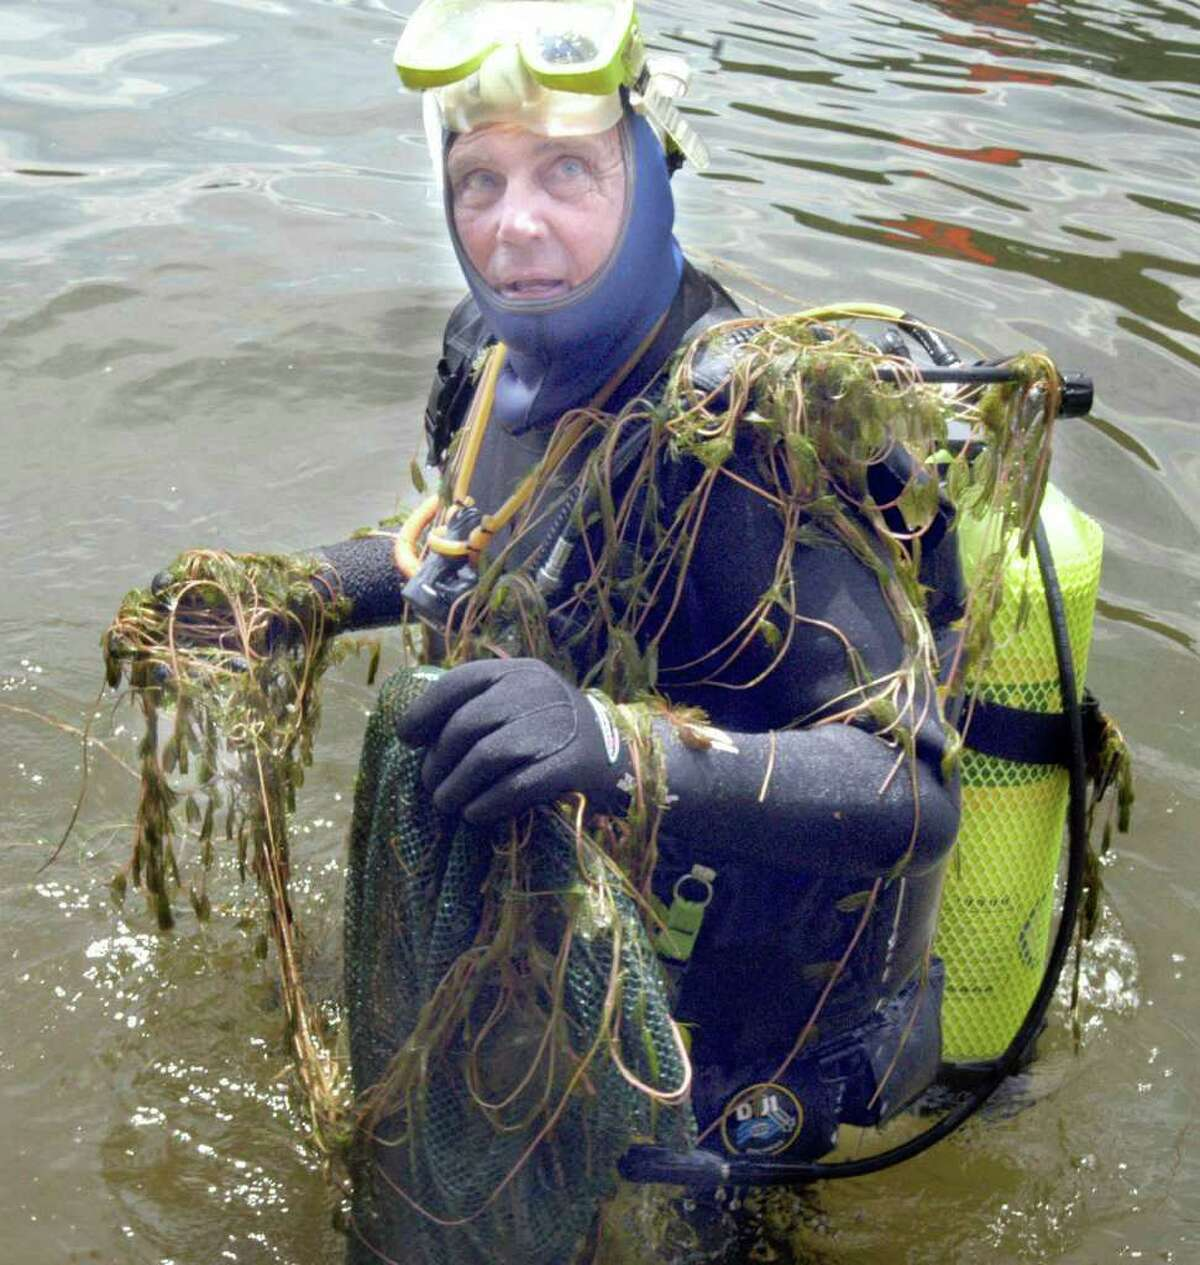 Ray Crawford is covered in Eusrian watermilfoil that he has pulled from Candlewood Lake in this file photo from 2009.